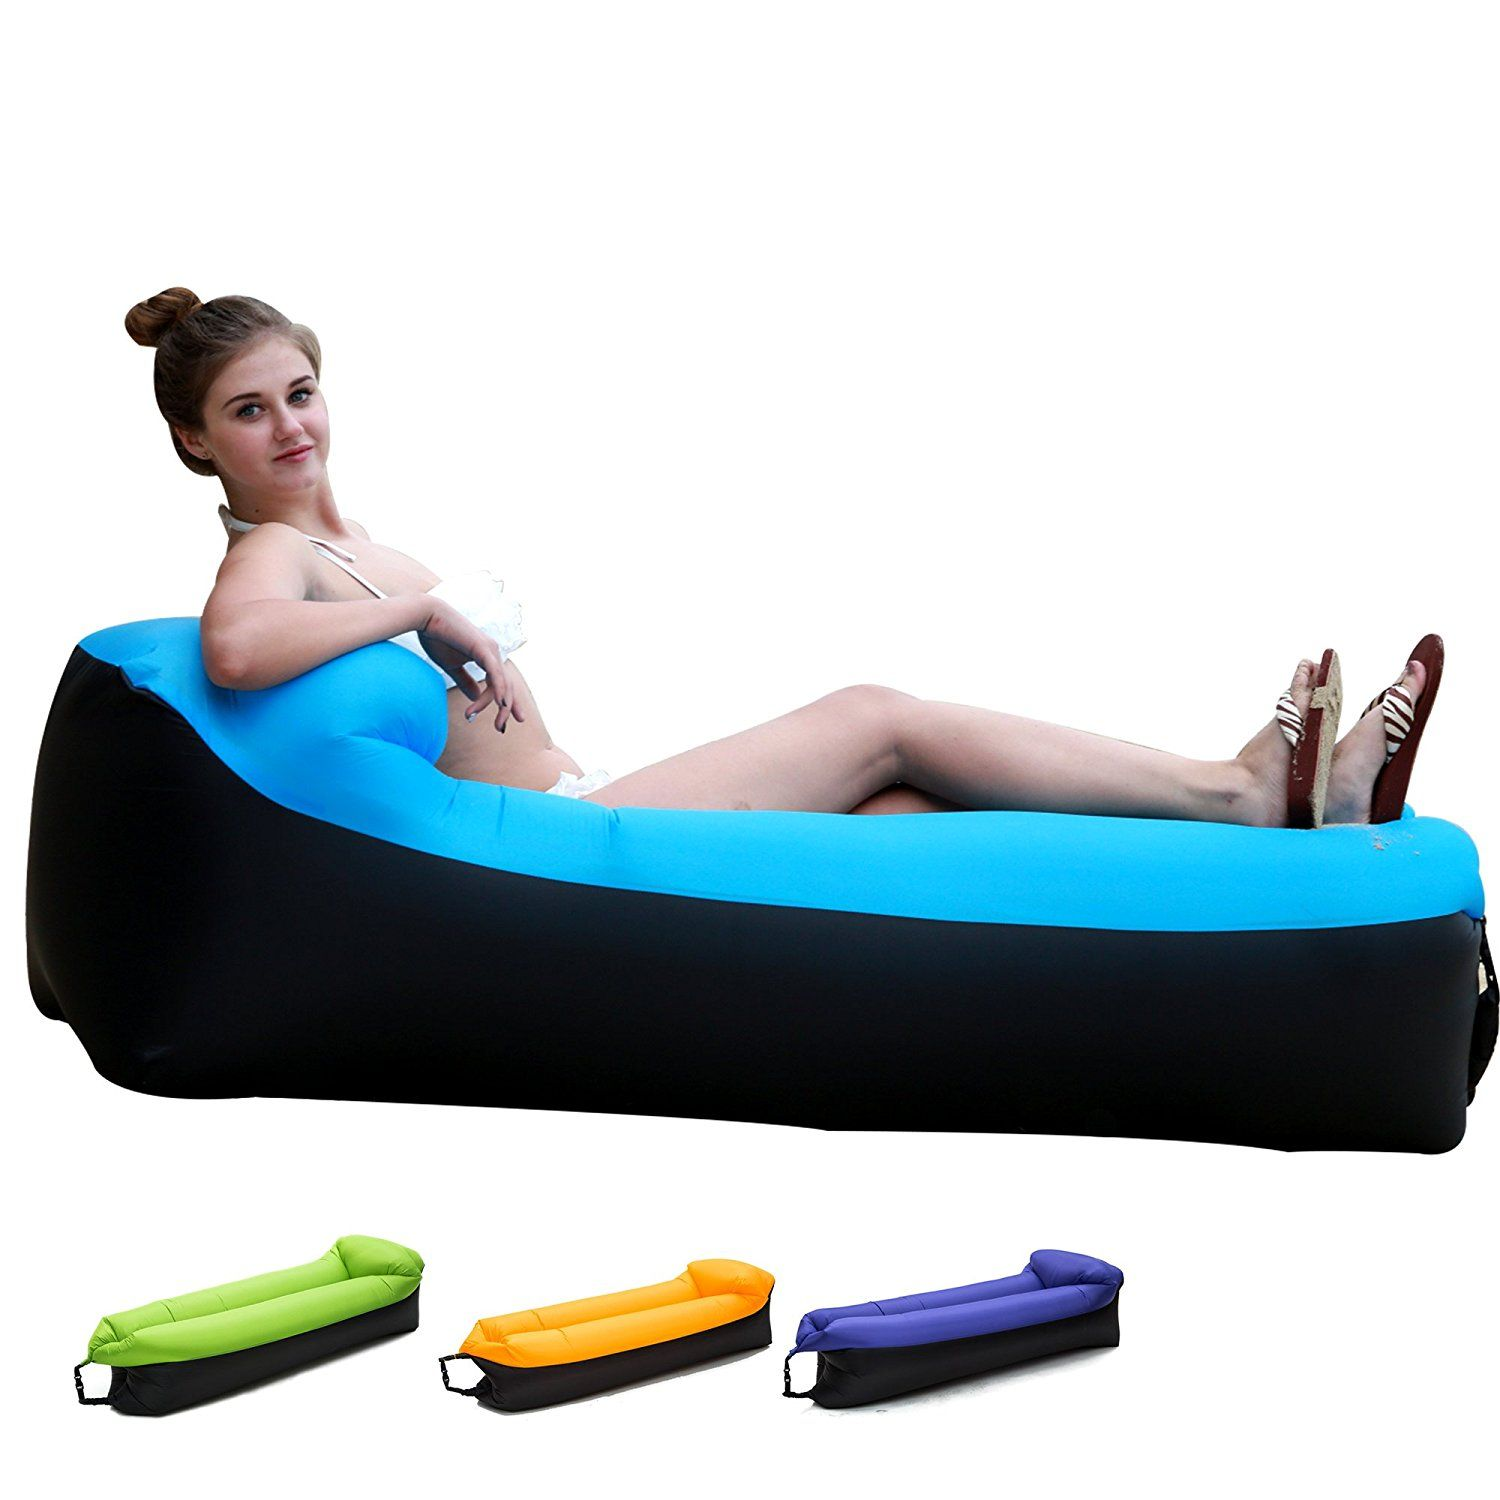 Inflatable Lounger Chair With Portable Carry Bag For Various Uses Inflatable Lounger Blue Sofa Loungers Chair